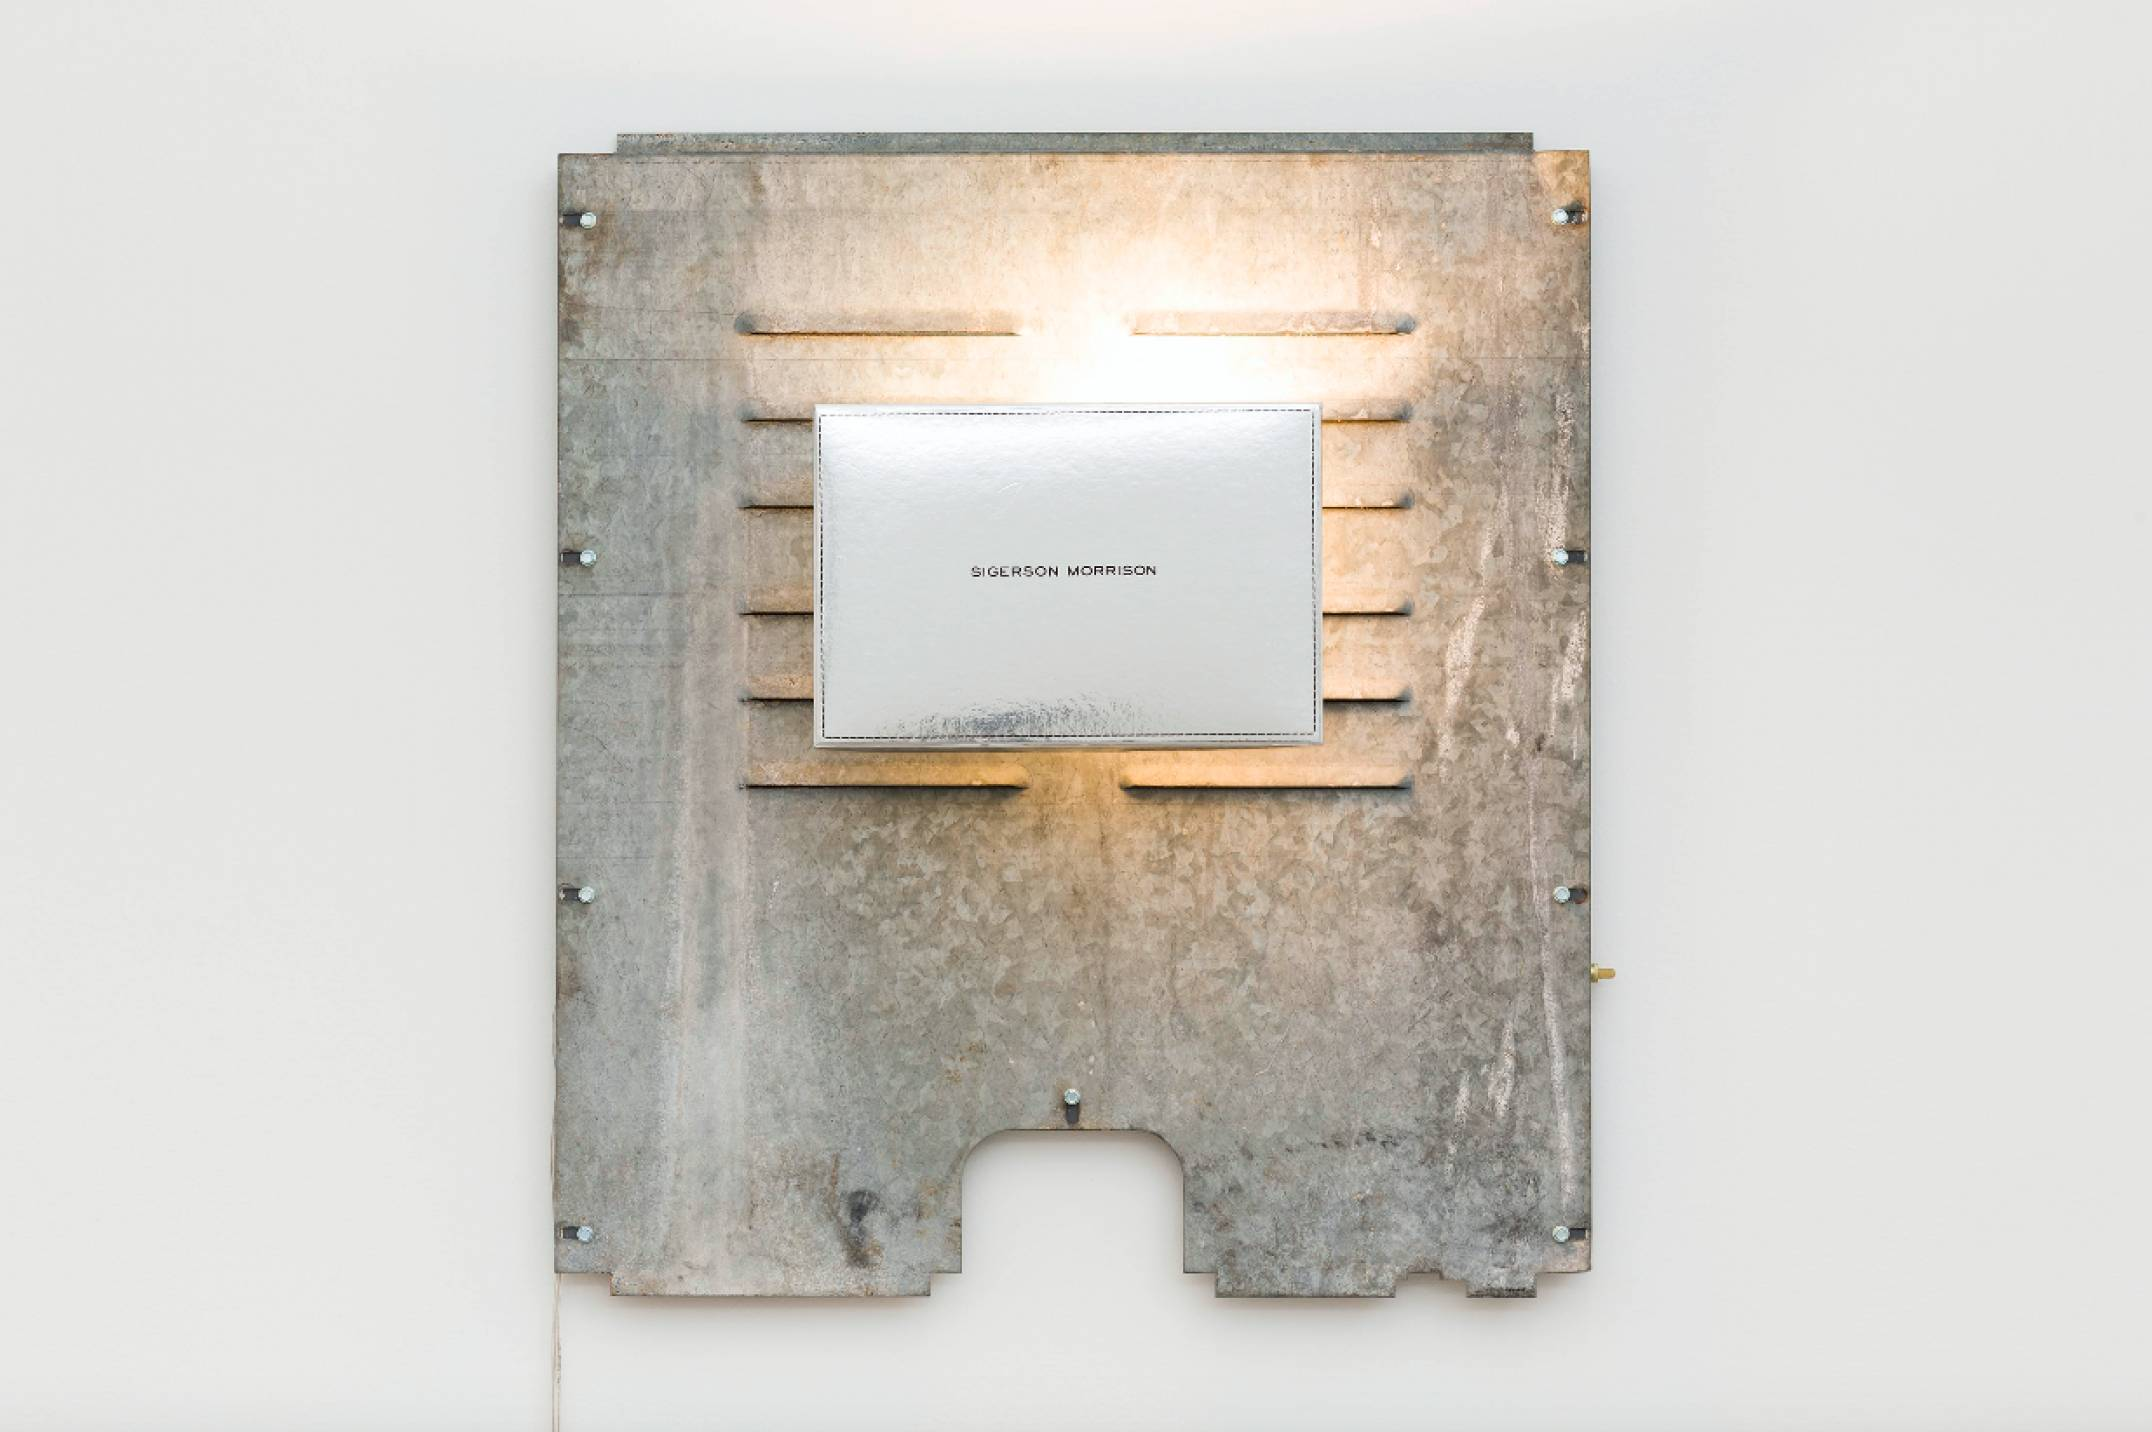 Aki Sasamoto, <em>Shoebox Wall Sconce (Sigerson Morrison)</em>, 2016, shoebox lid, backboard of a used laundry machine, wall sconce, wood, LED light bulb and push button switch, 74,3 × 66 × 17,8 cm - Mendes Wood DM